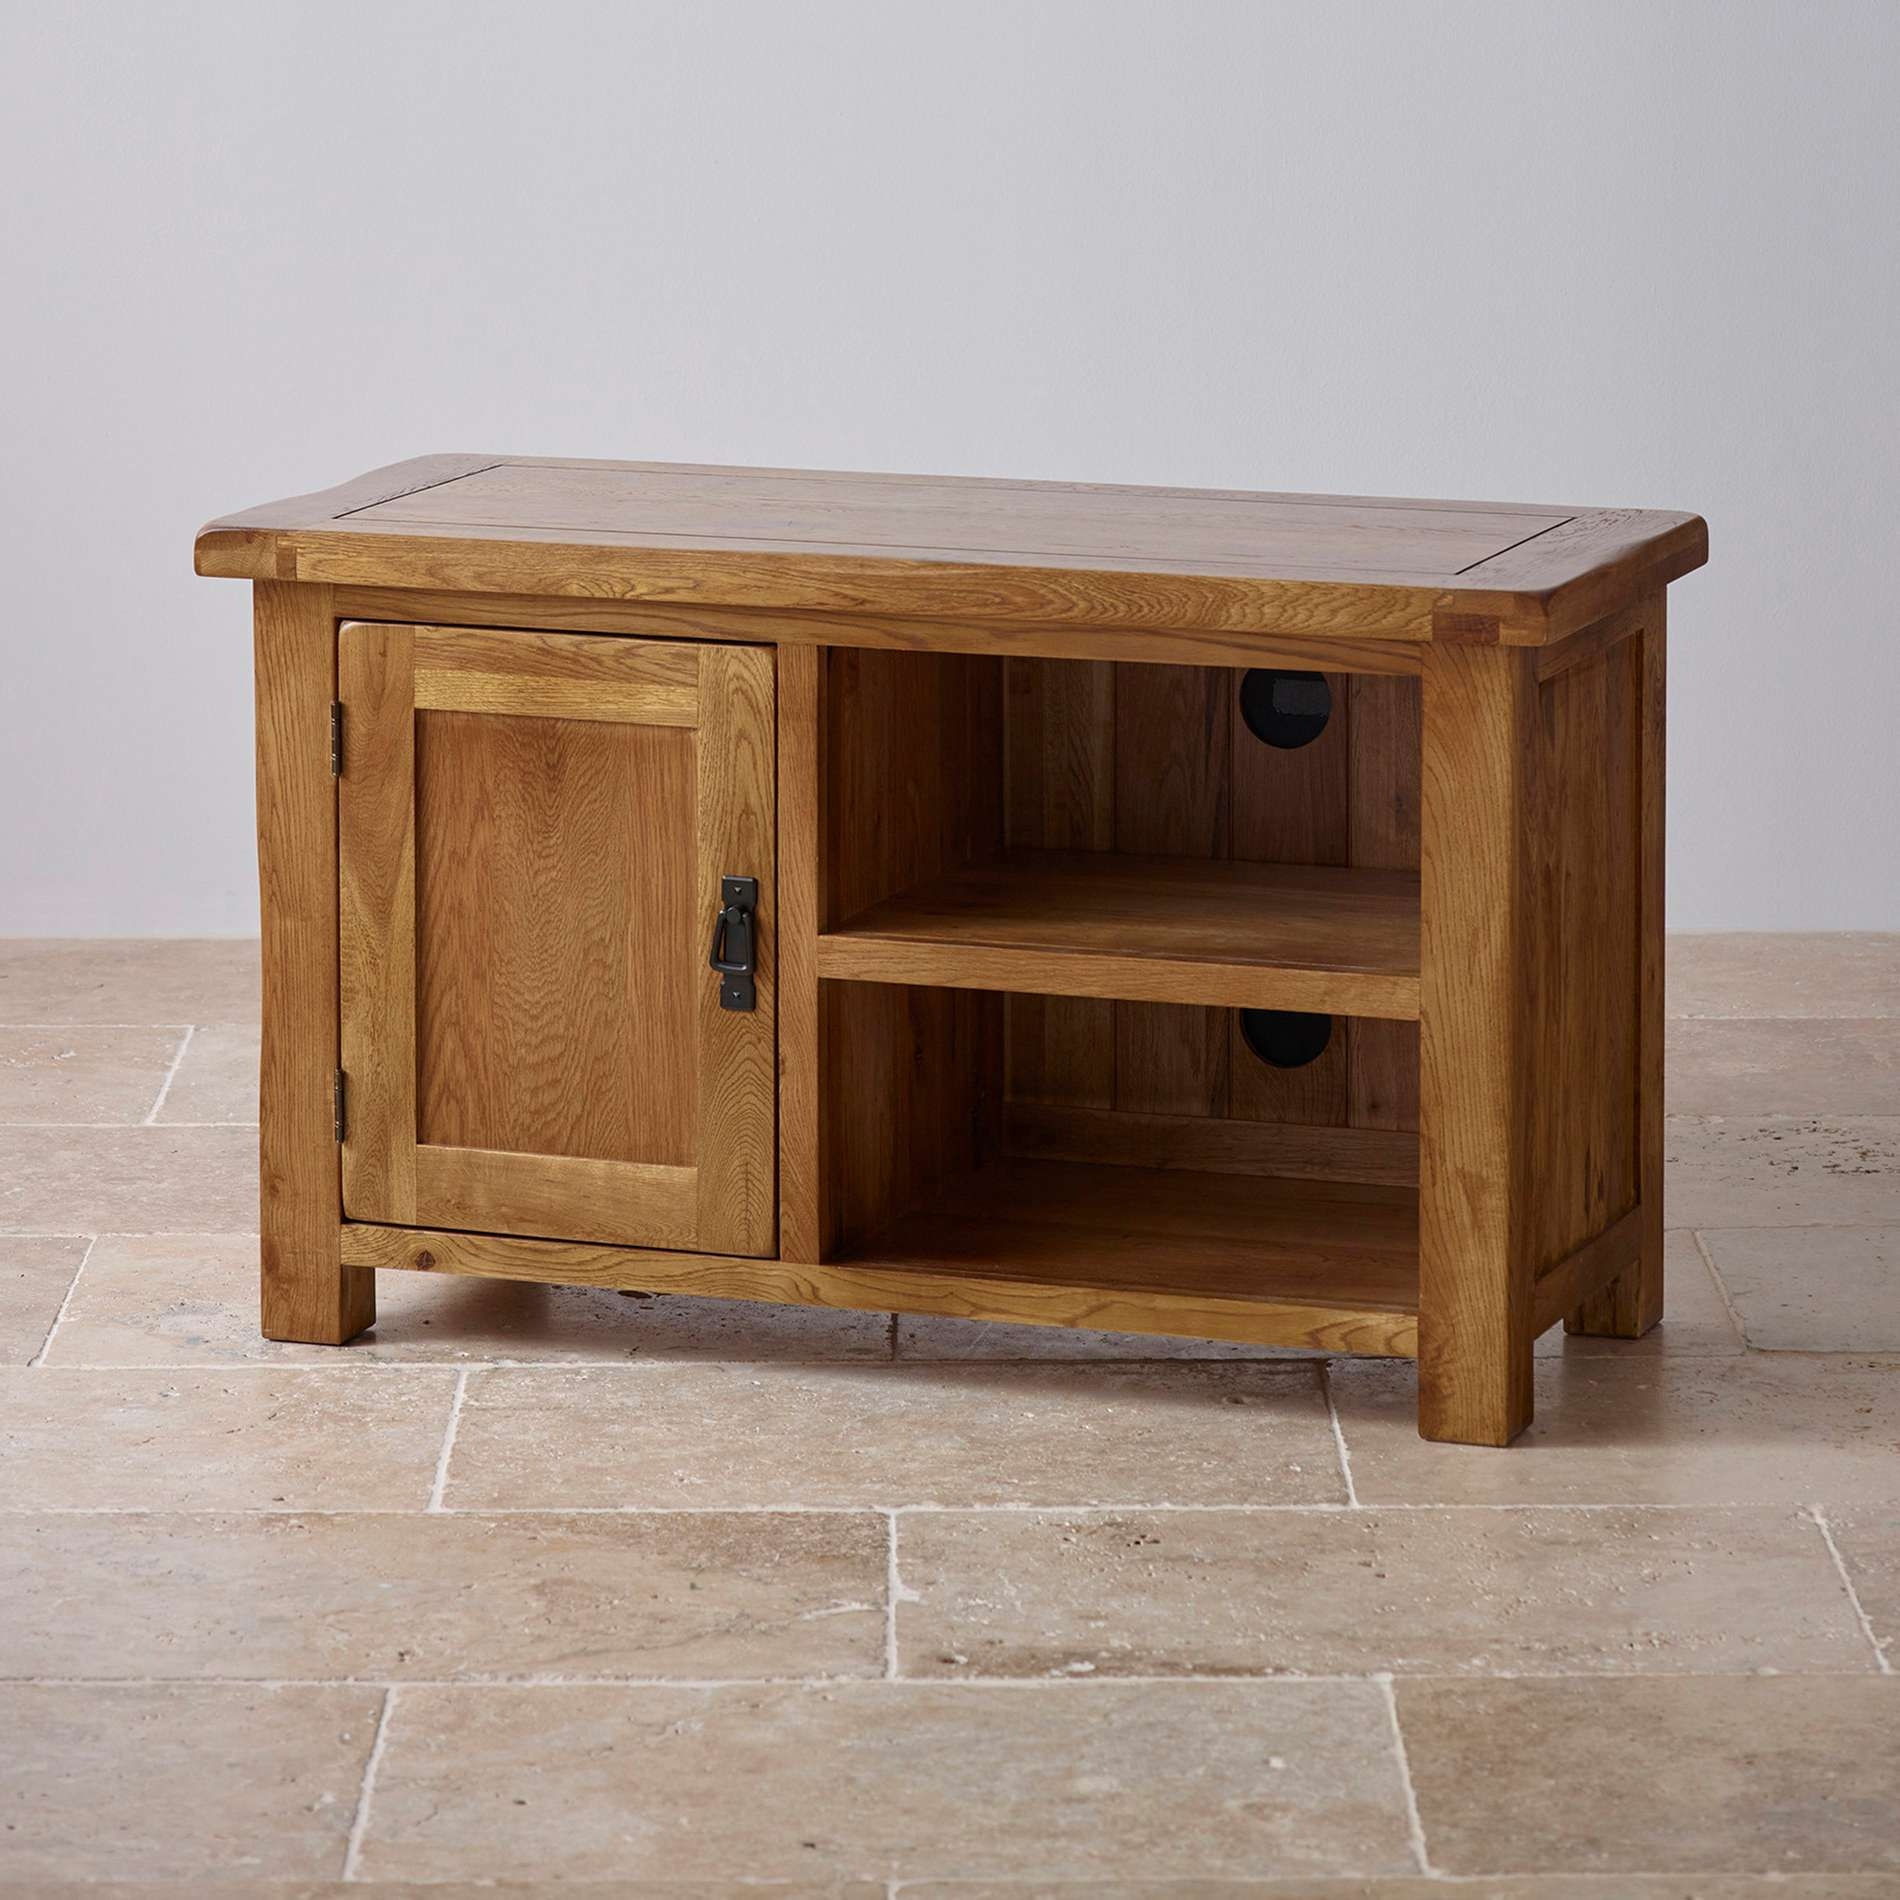 Original Rustic Range | Solid Oak | Oak Furniture Land Pertaining To Oak Tv Cabinets With Doors (View 13 of 20)